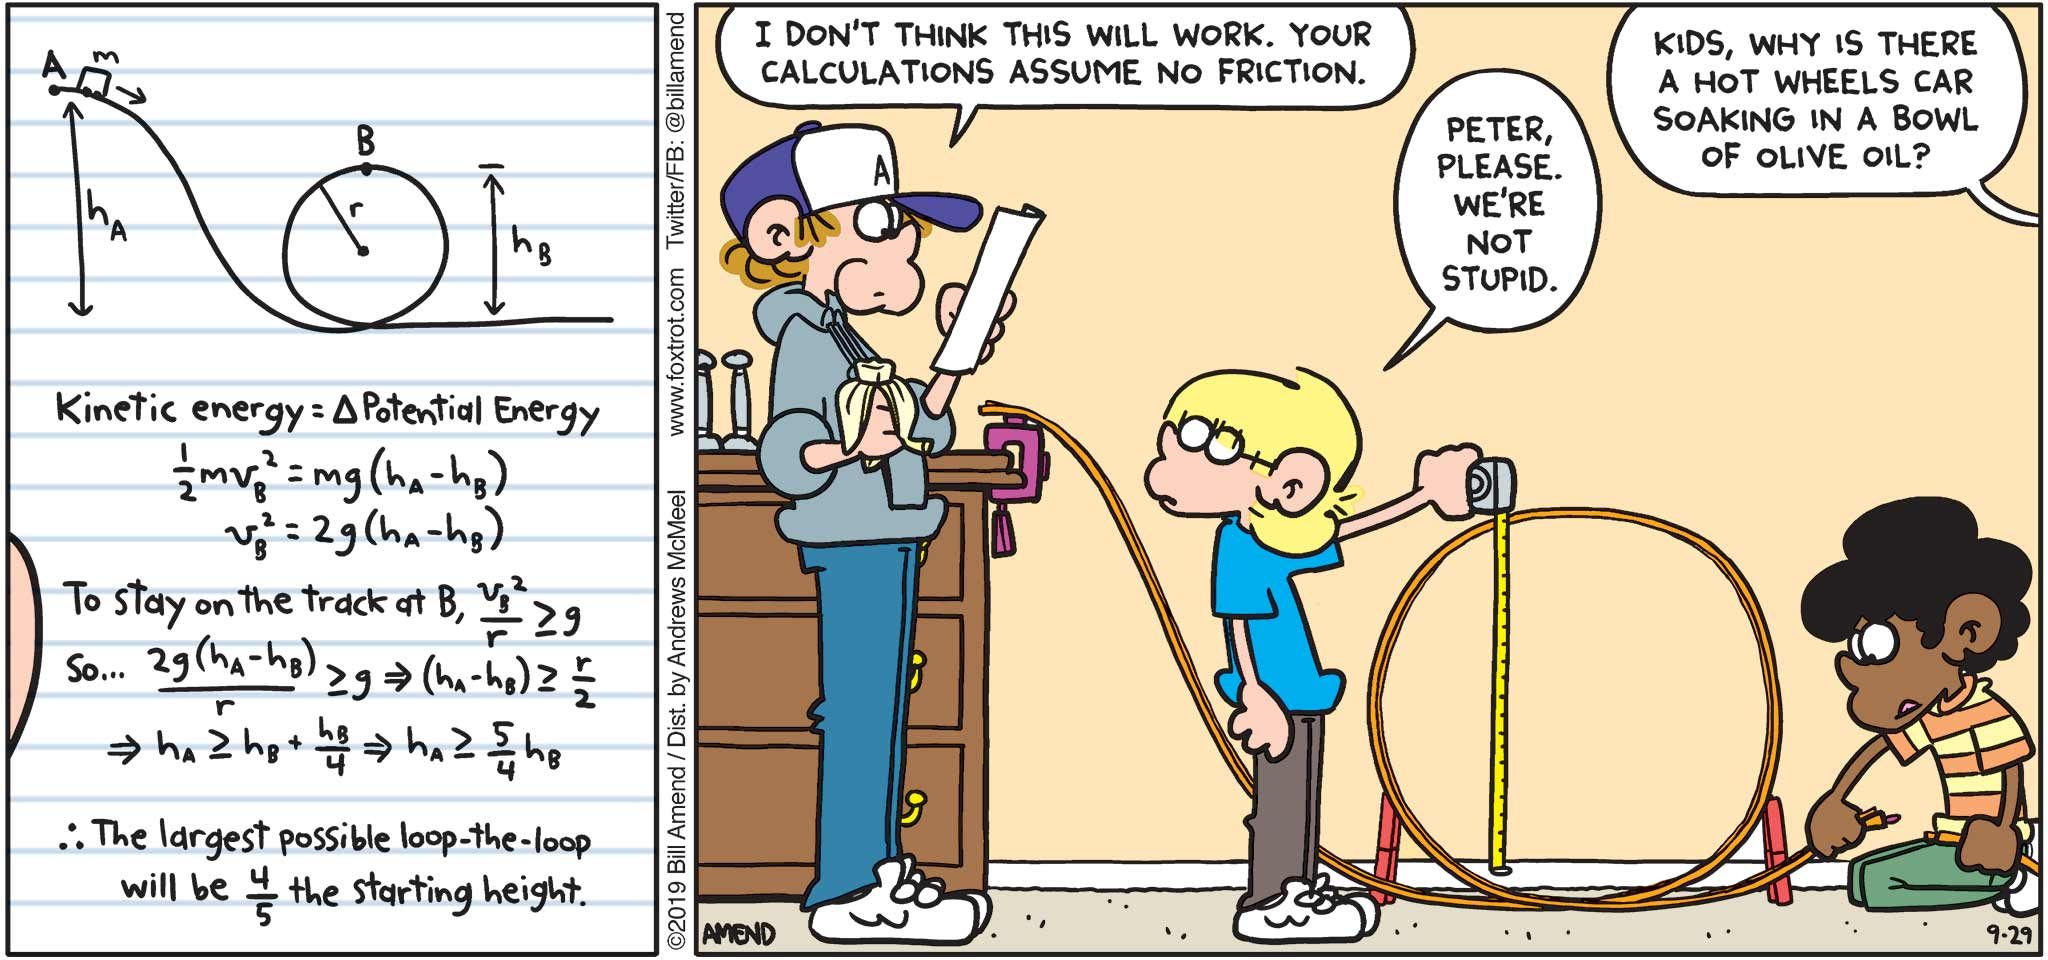 "FoxTrot by Bill Amend - ""Loopy Physics"" published September 29, 2019 - Peter: I don't think this will work. Your calculations assume no friction. Jason: Peter, please. we're not stupid. Andy: Kids, why is there a hot wheels car soaking in a bowl of olive oil?"